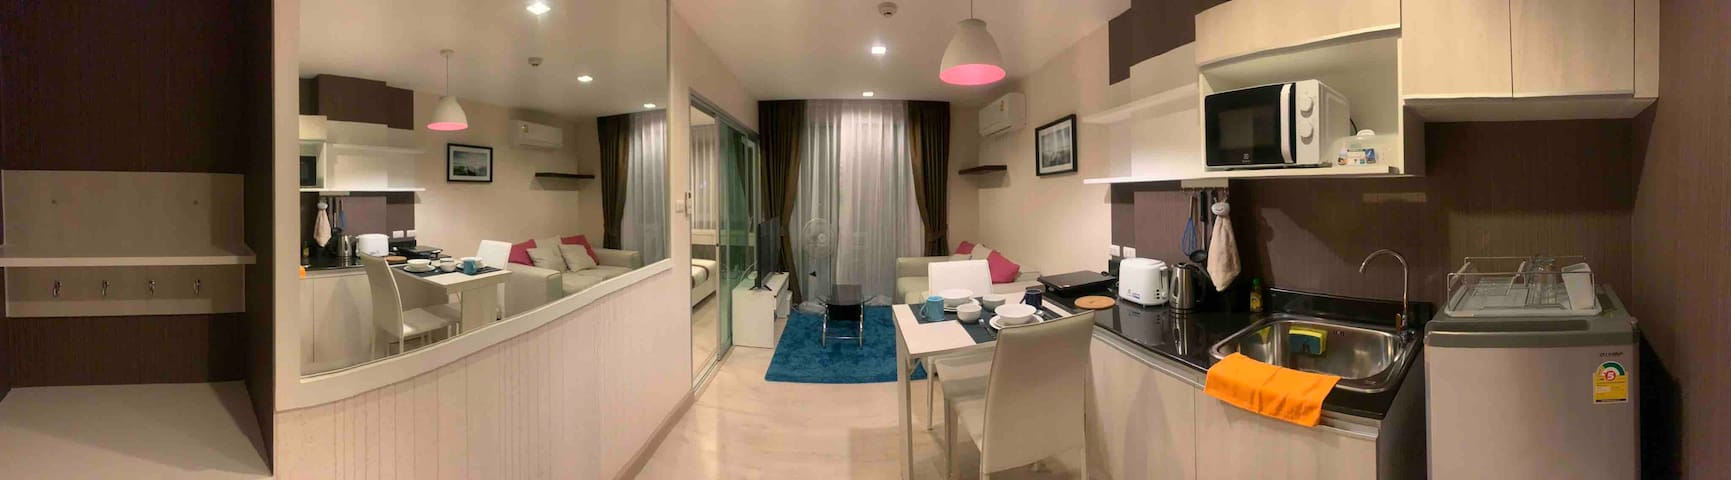 New Full Furnished Private Condo in Chiang Mai